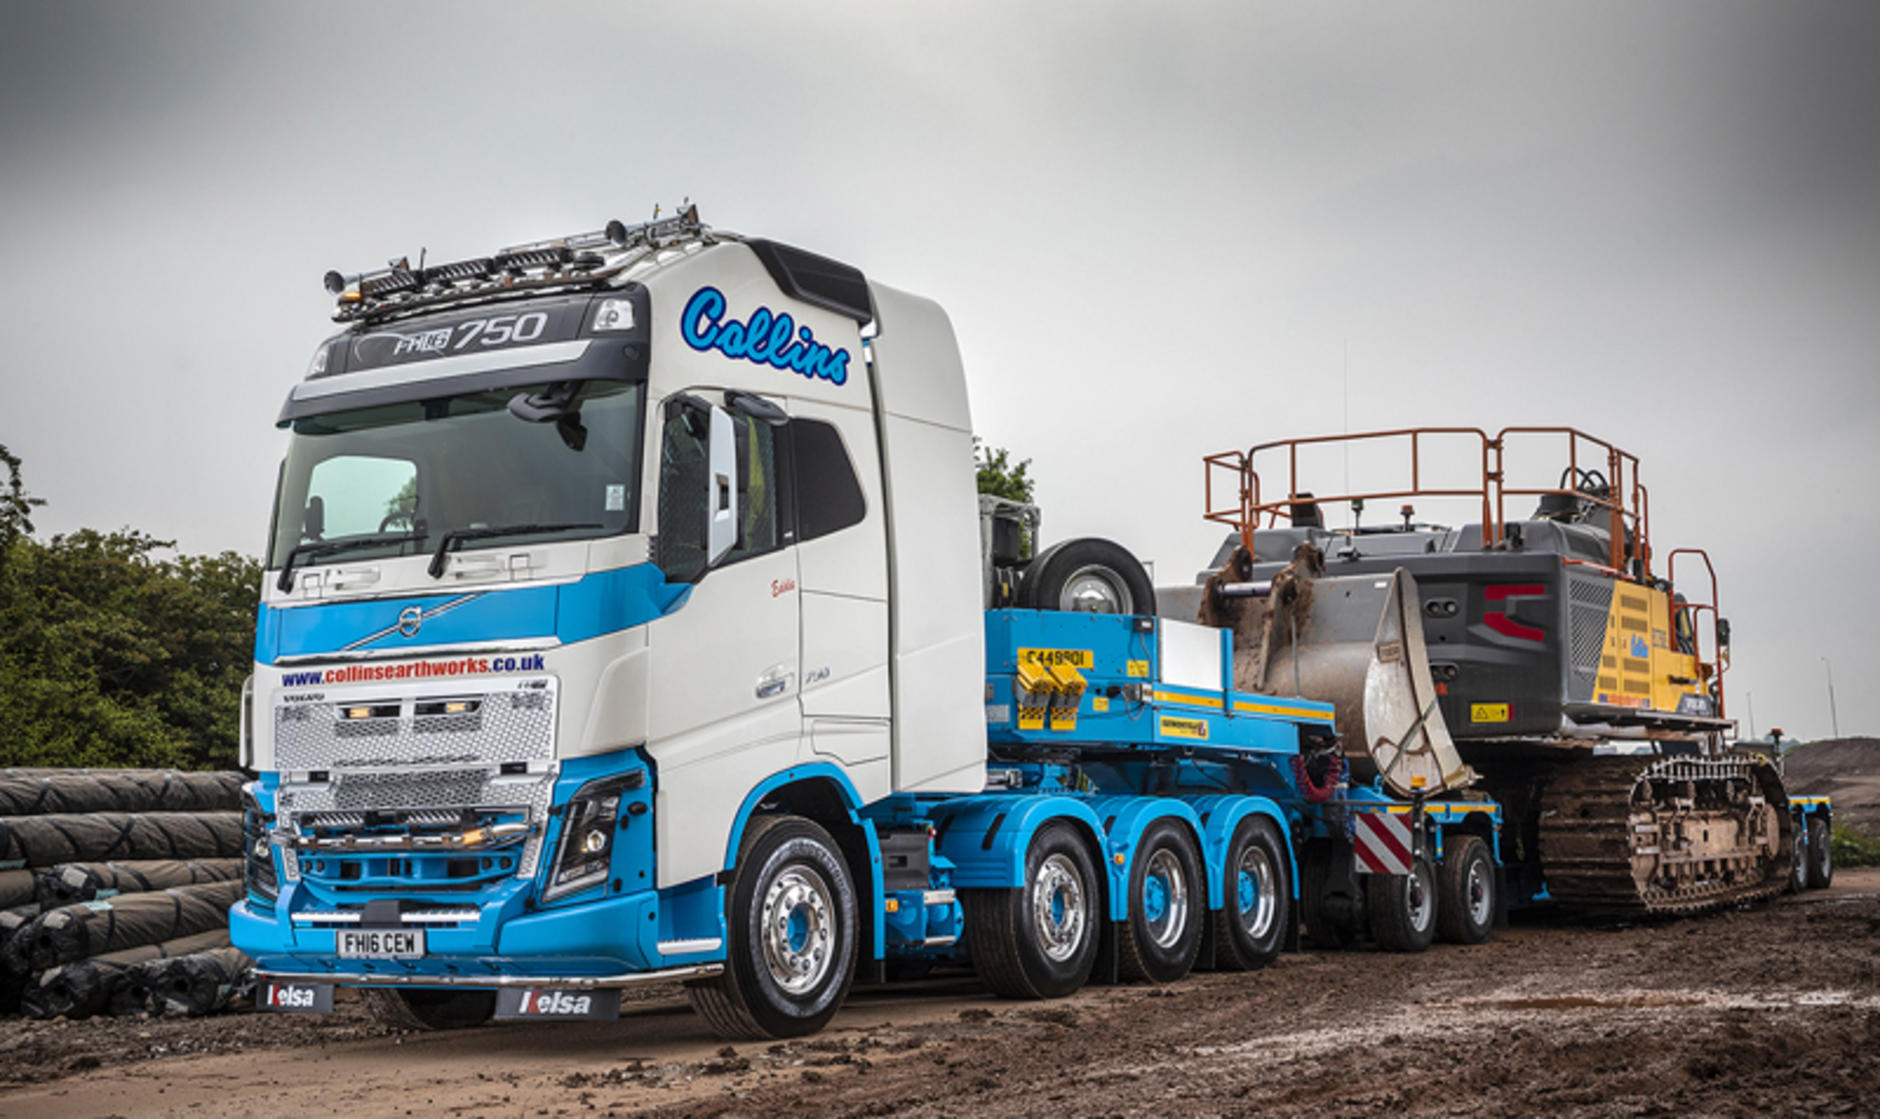 collins earthworks takes 8x4 volvo tractor unit after run with